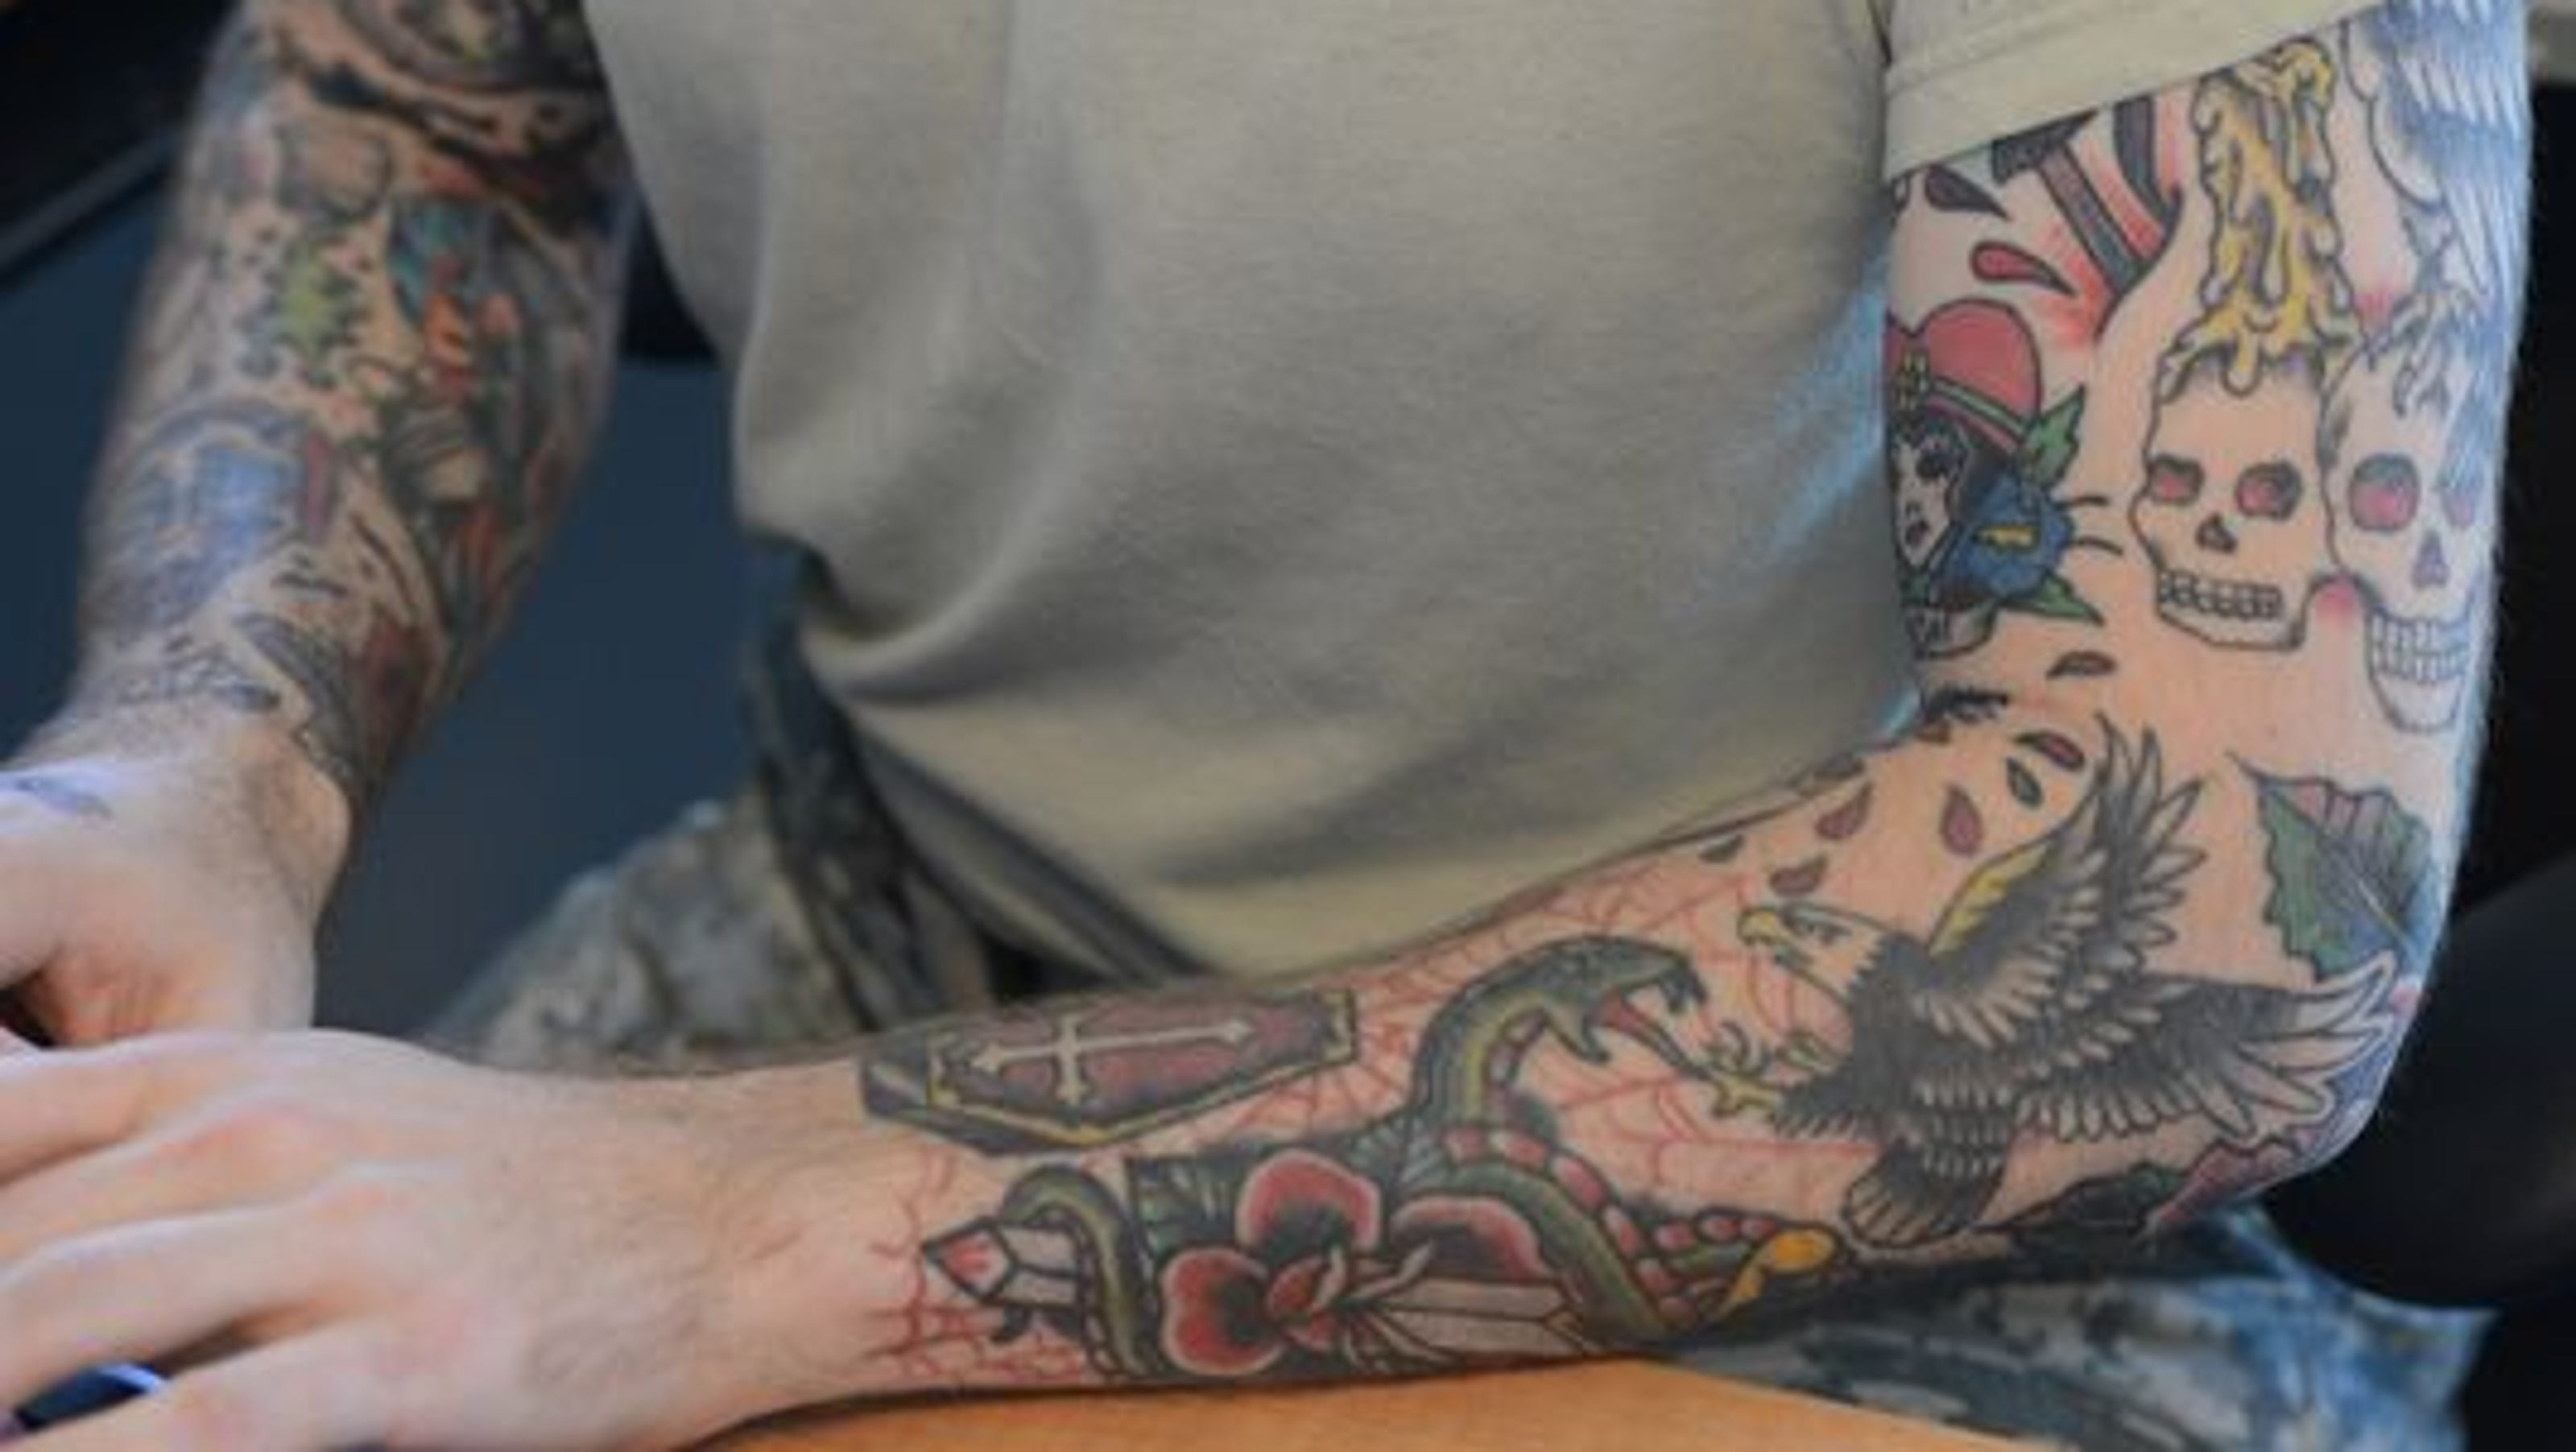 Army tattoo policy 2014 for Military tattoo policy 2017